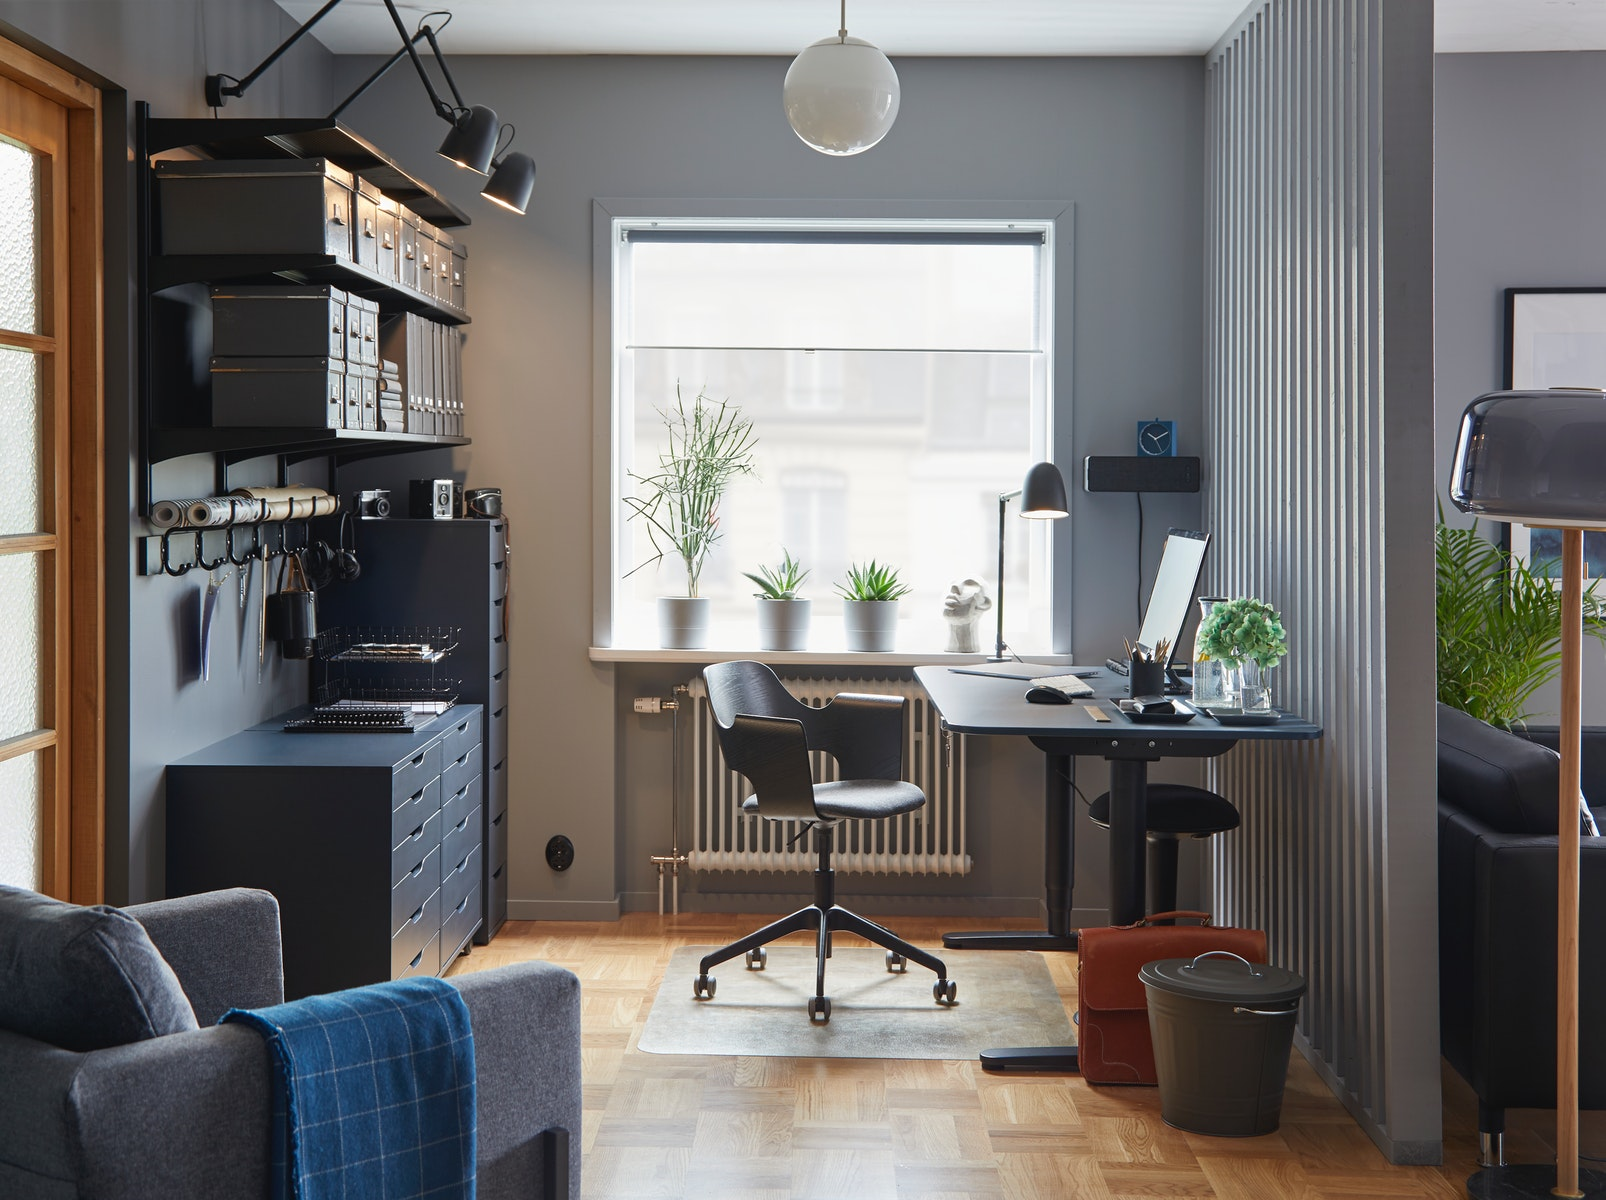 A professional workspace that blends seamlessly with your home